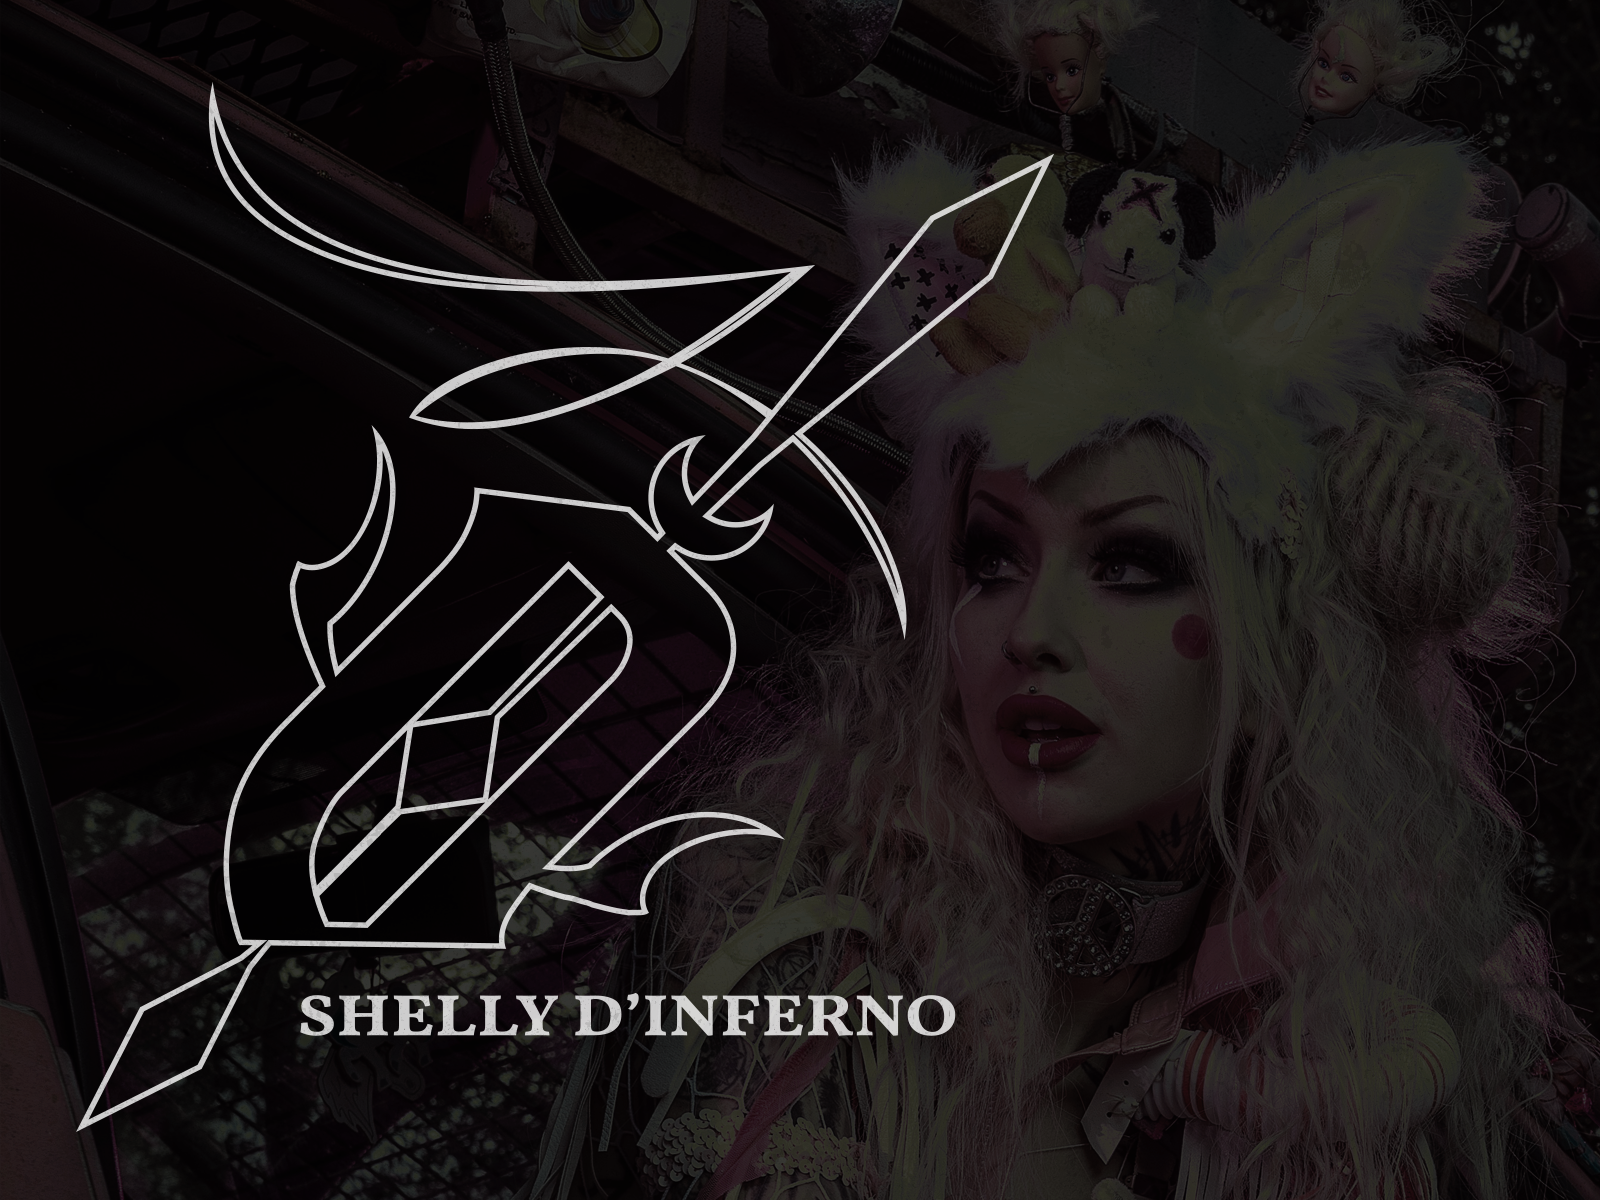 An emblem version of the logo created using the abstract sun symbol and sai sword with the words Shelly d'Inferno beneath.